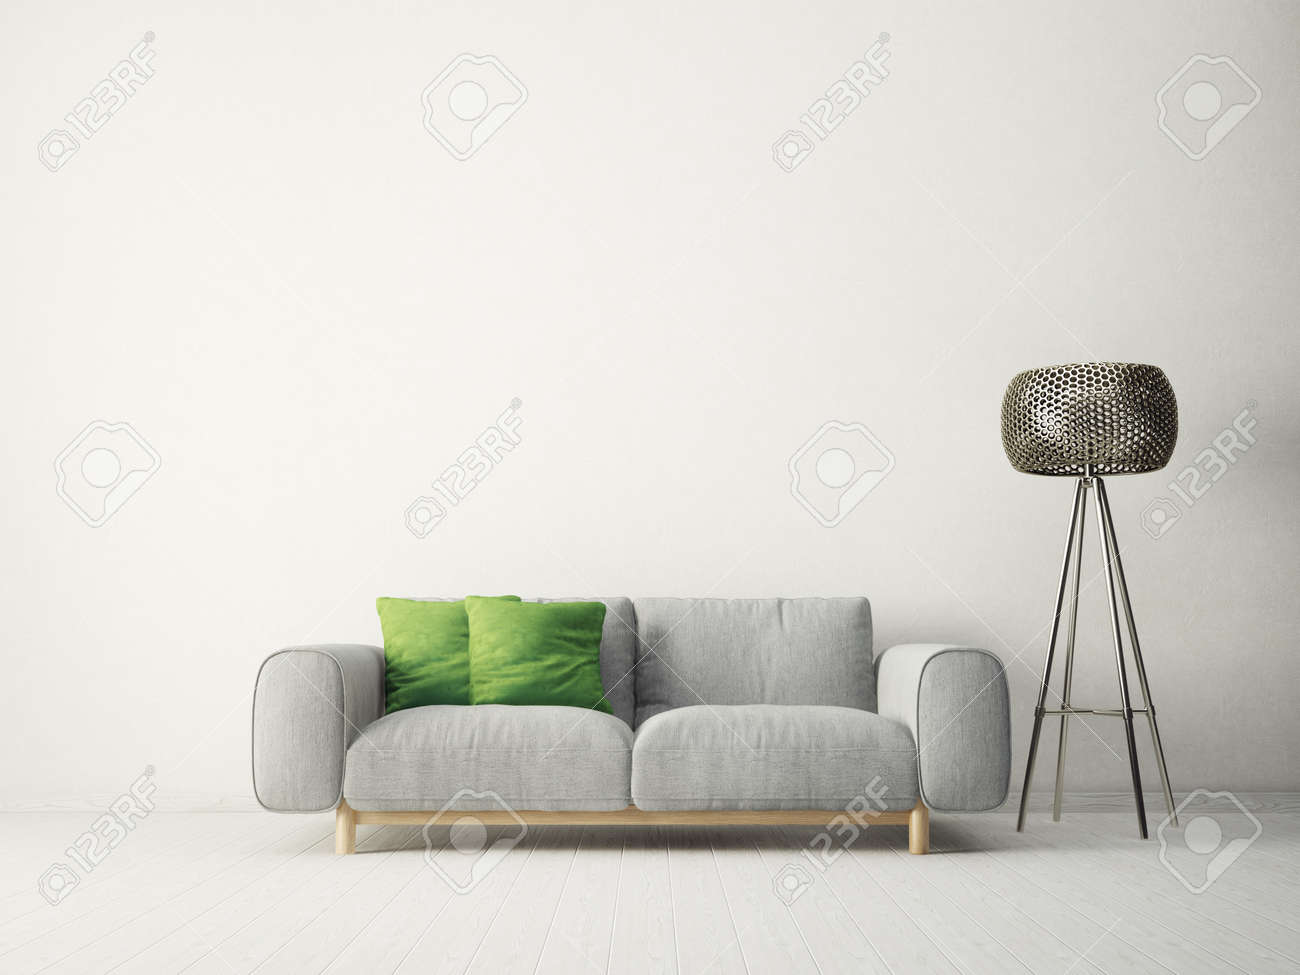 Sofa Modern Skandinavisch Stock Illustration